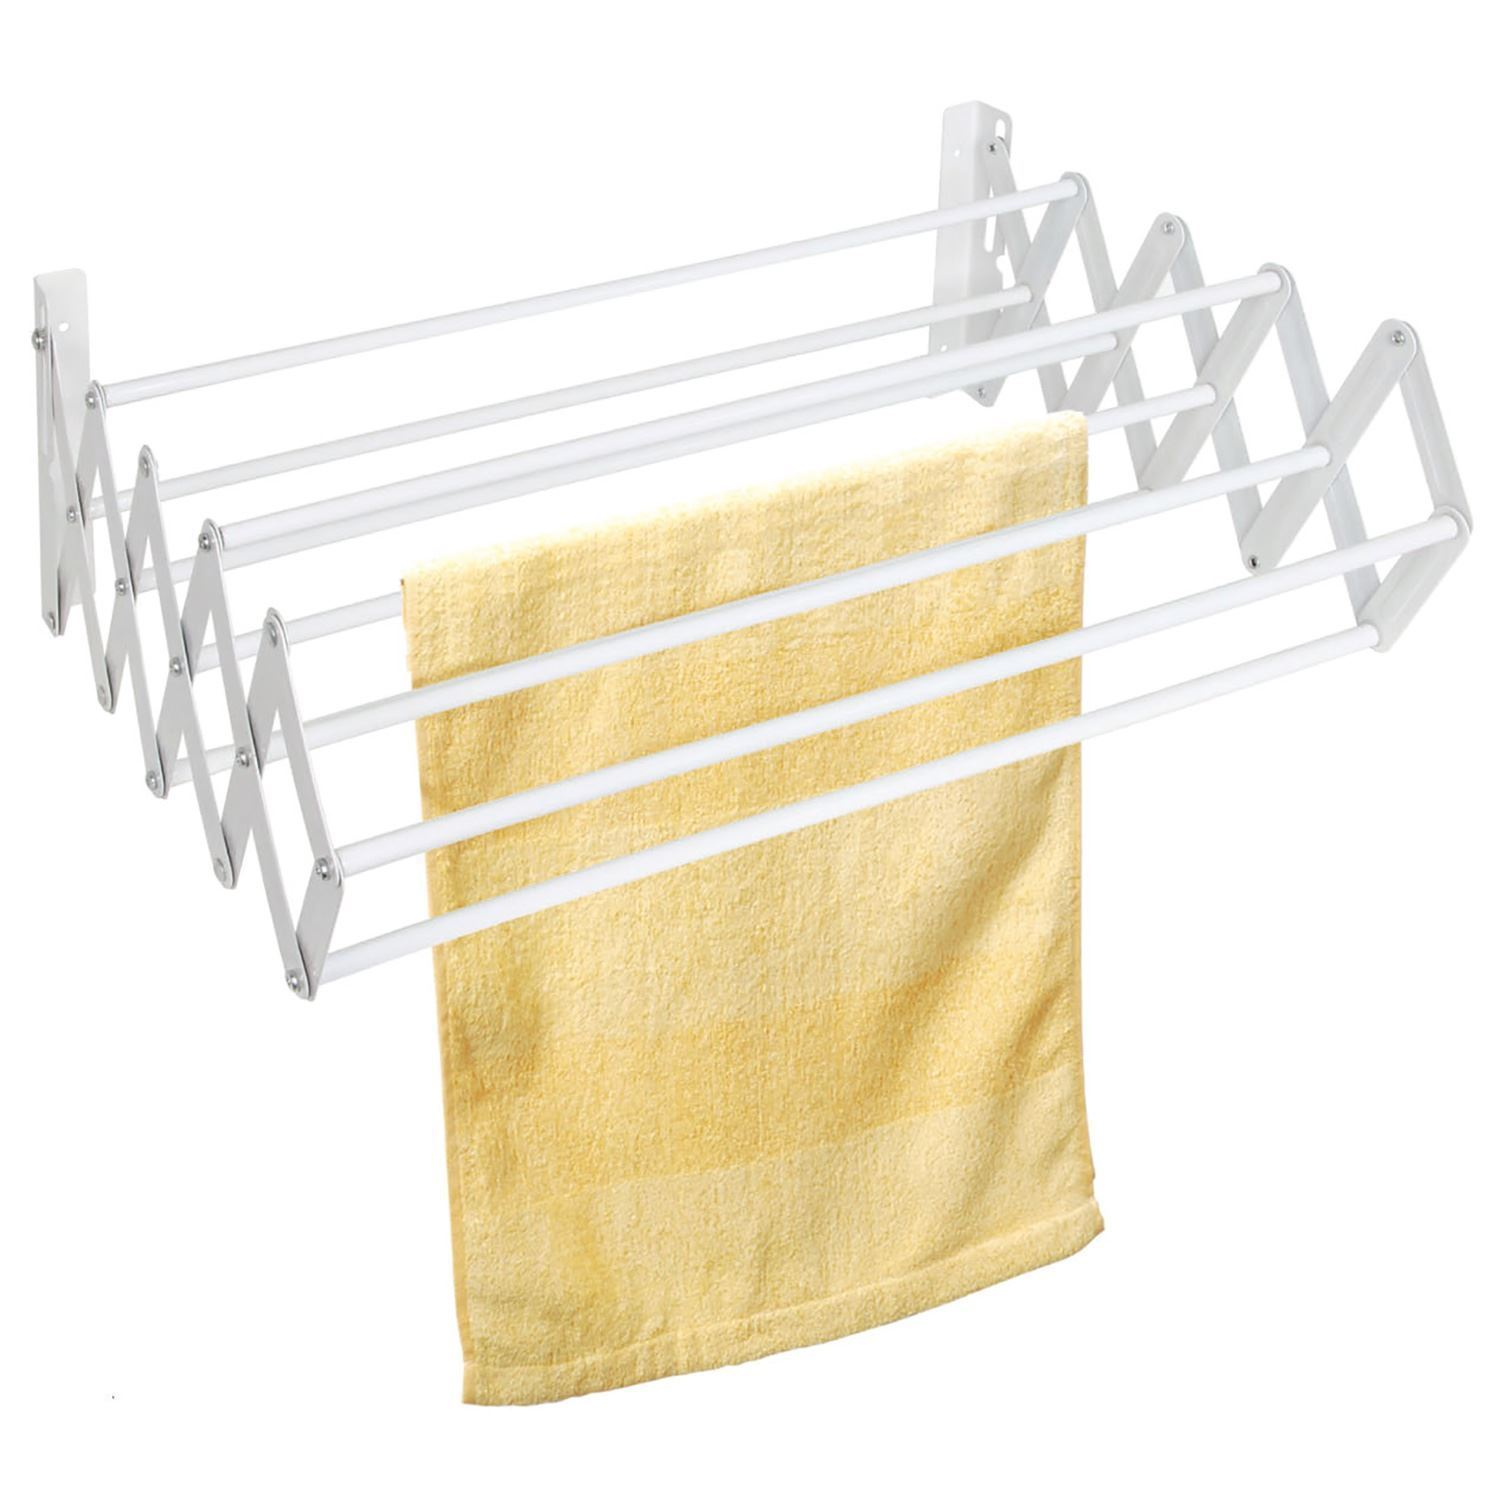 wall mounted extendible laundry clothes wash line airer. Black Bedroom Furniture Sets. Home Design Ideas